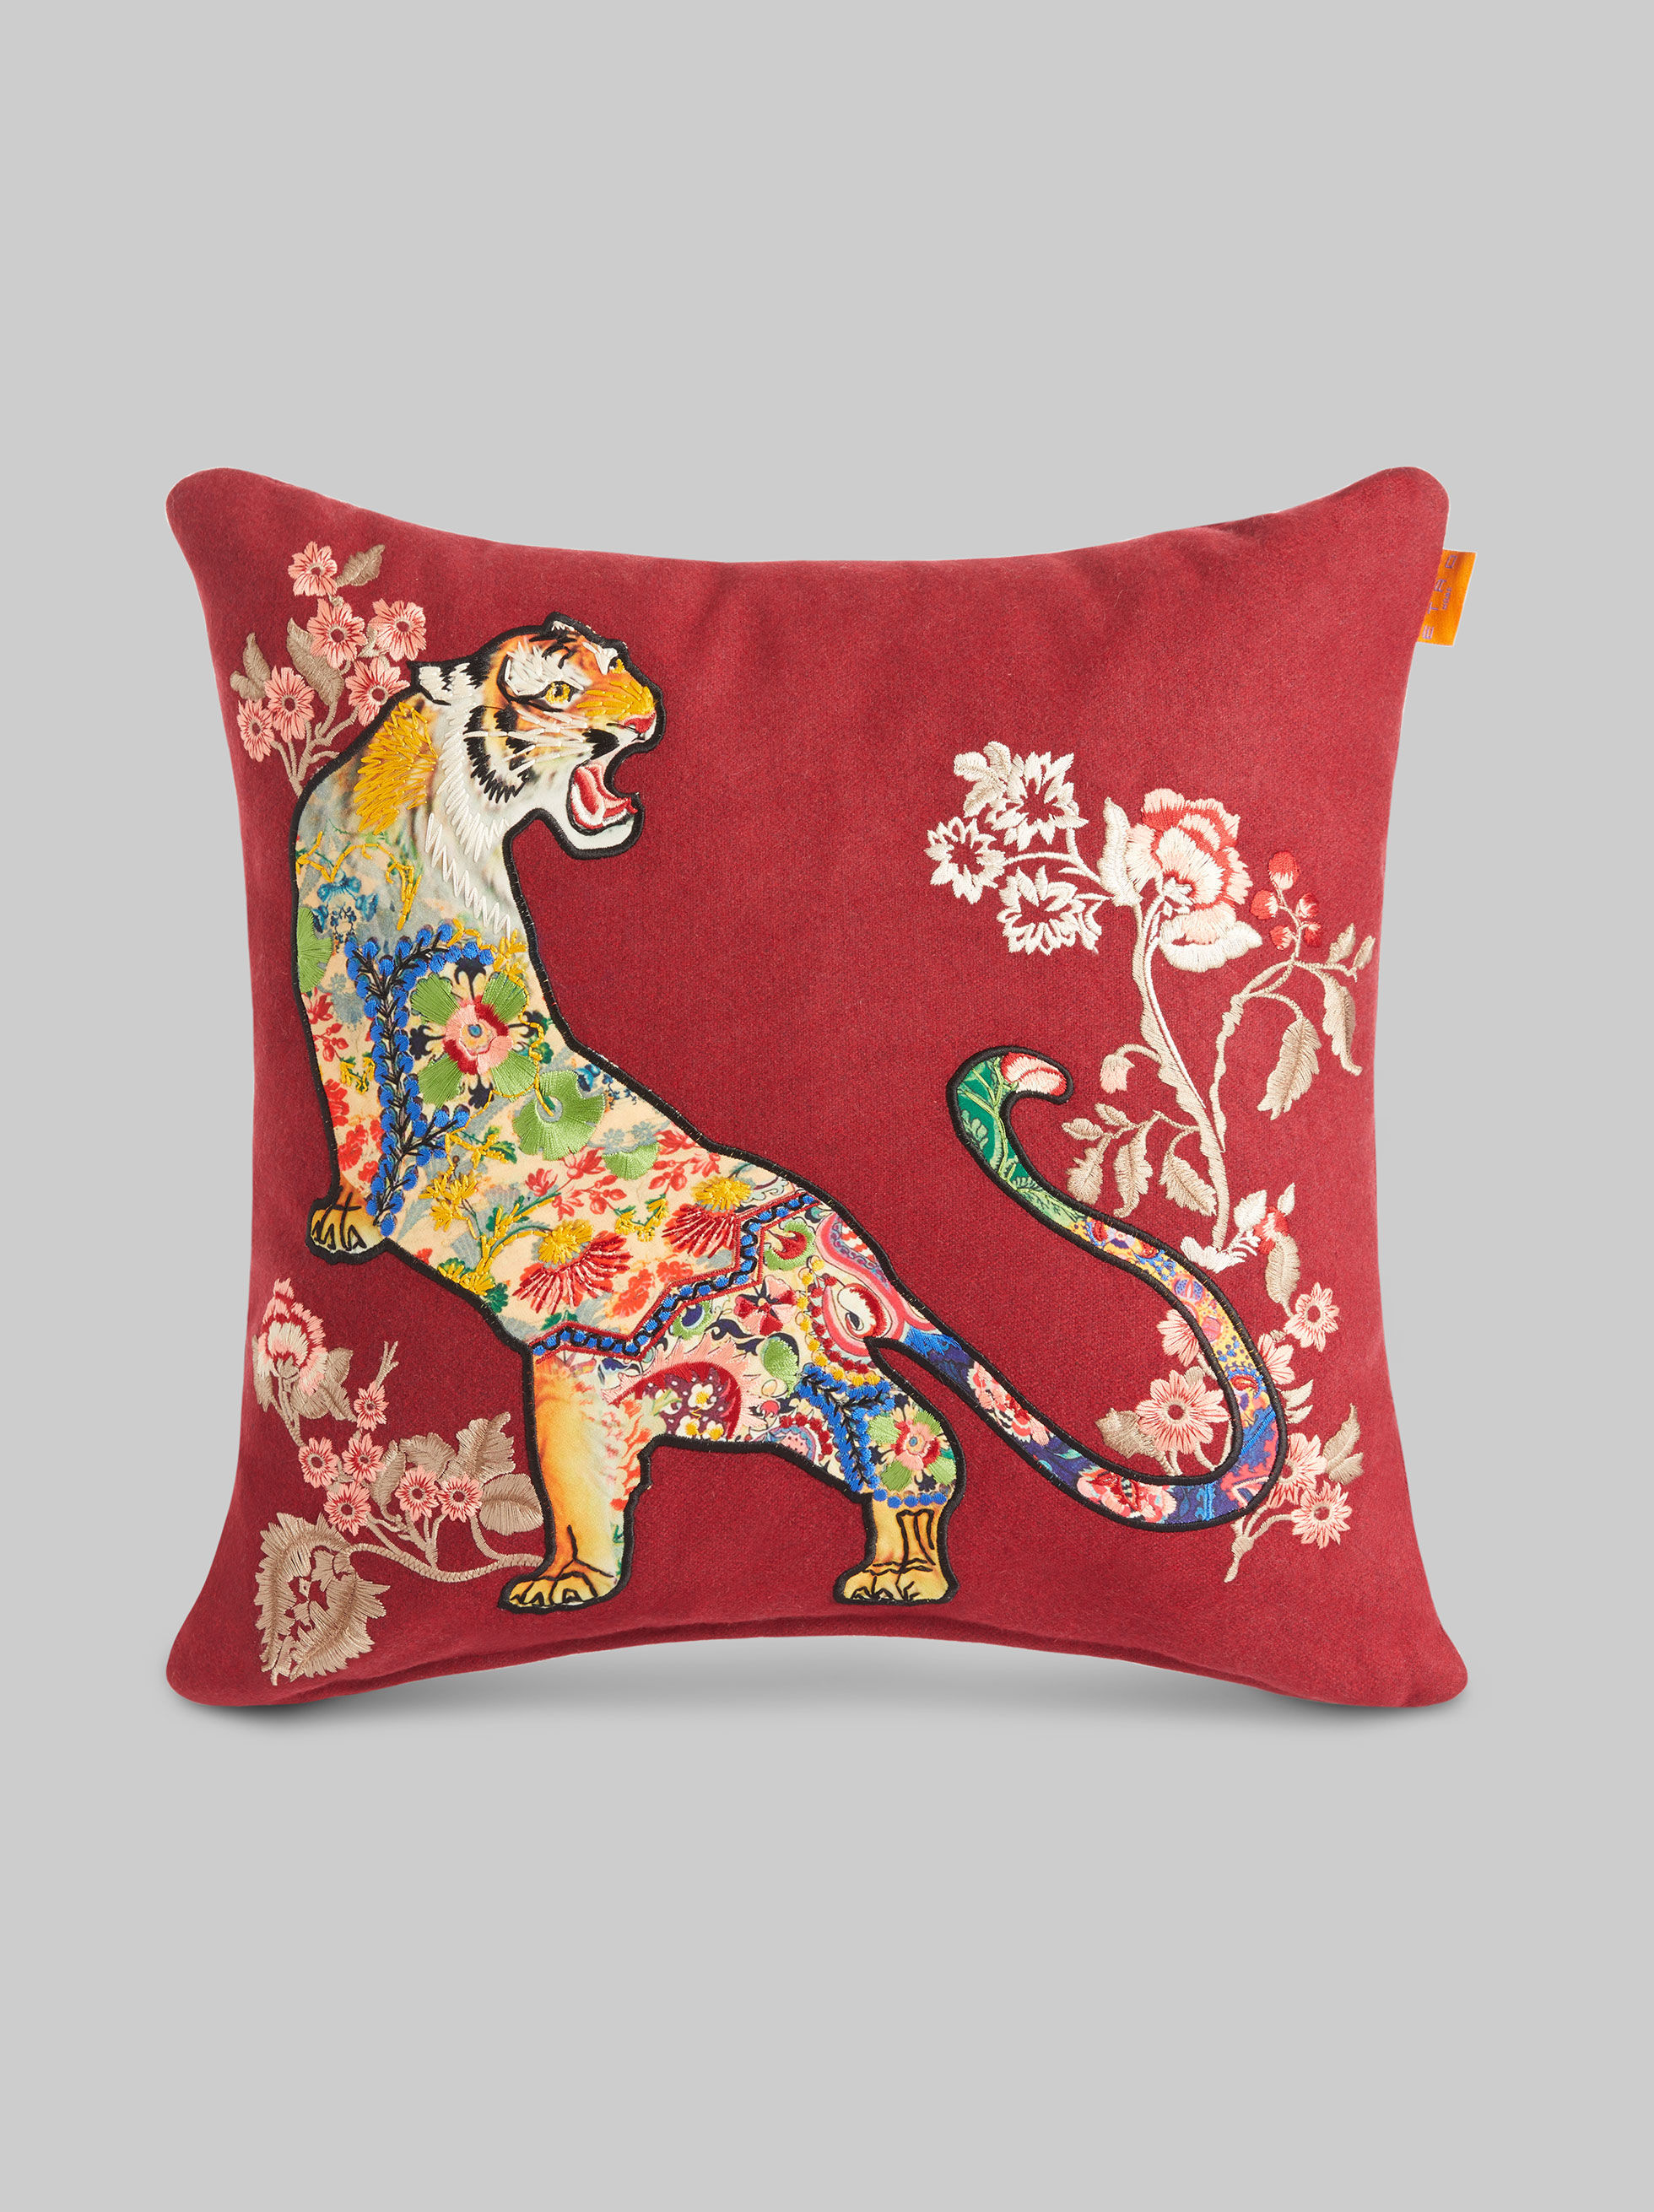 THROW PILLOW WITH EMBROIDERY